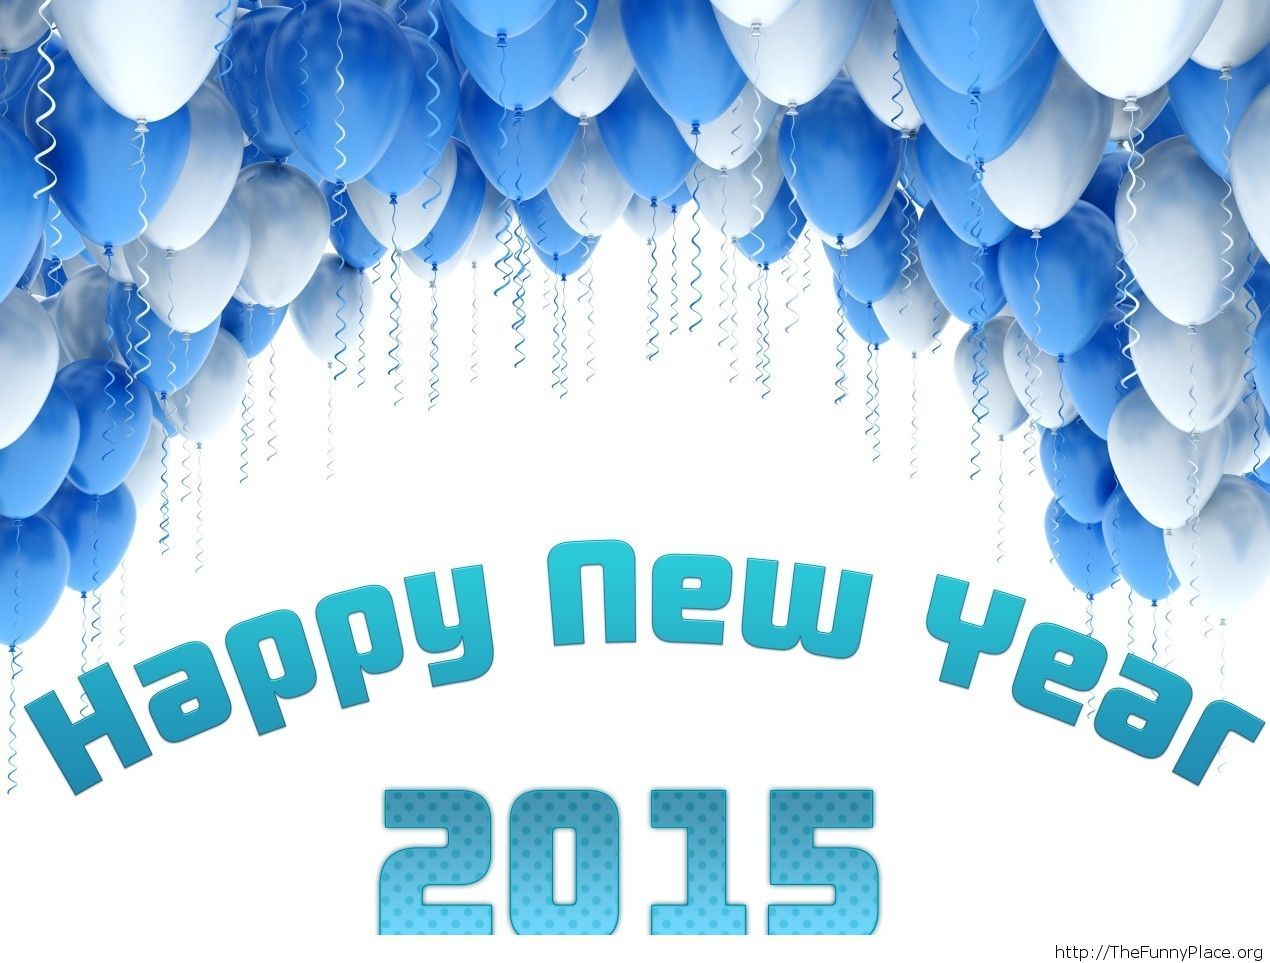 New Year 2015 wallpaper blue balloons